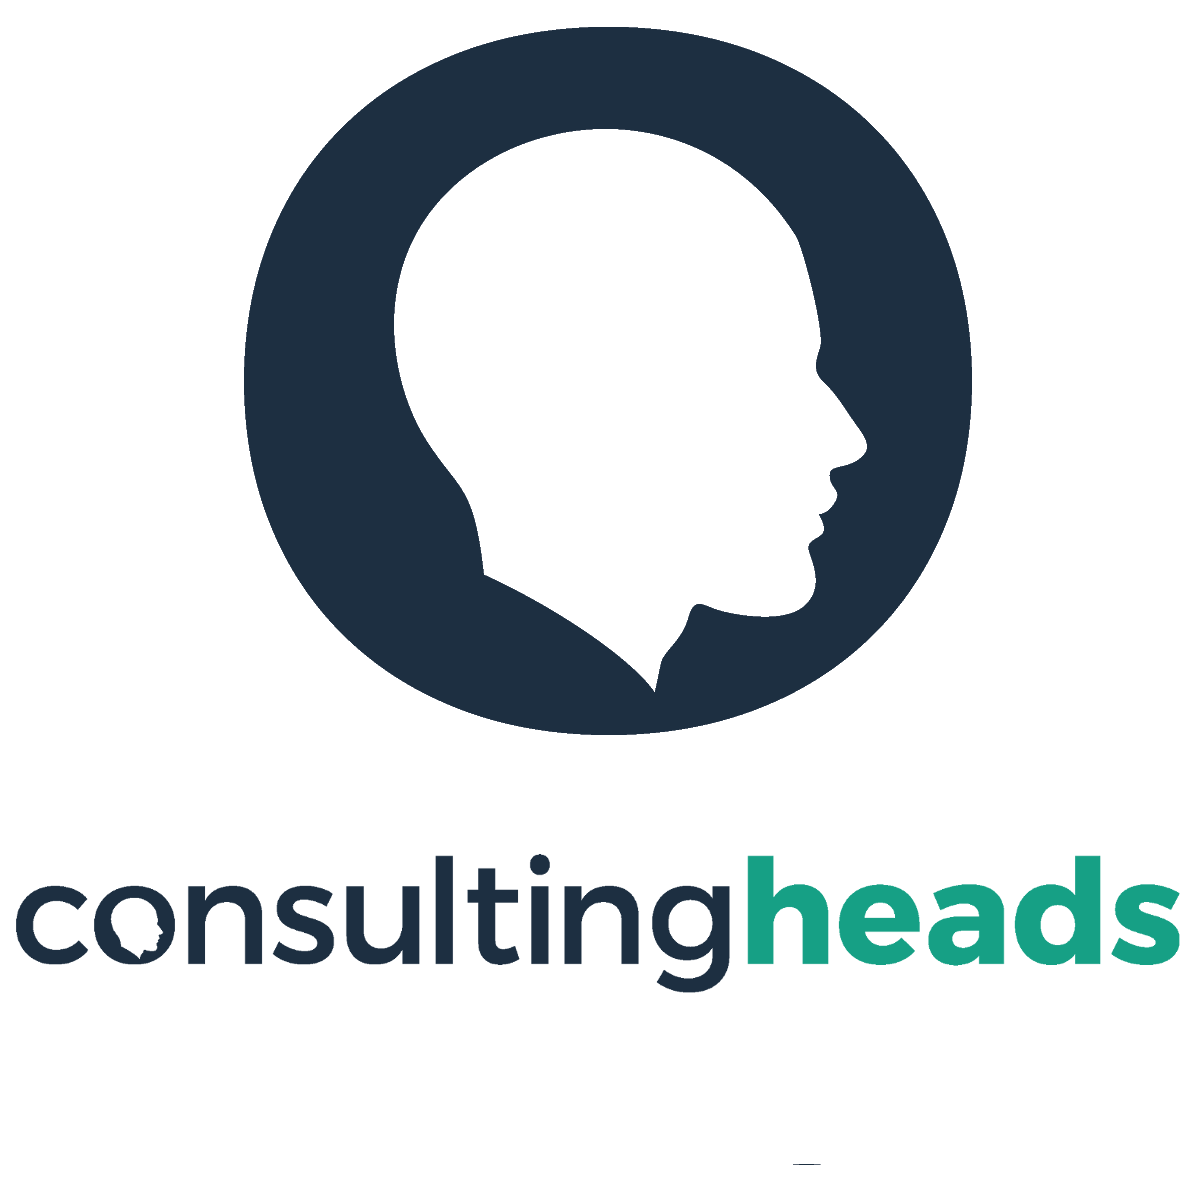 Über consultingheads